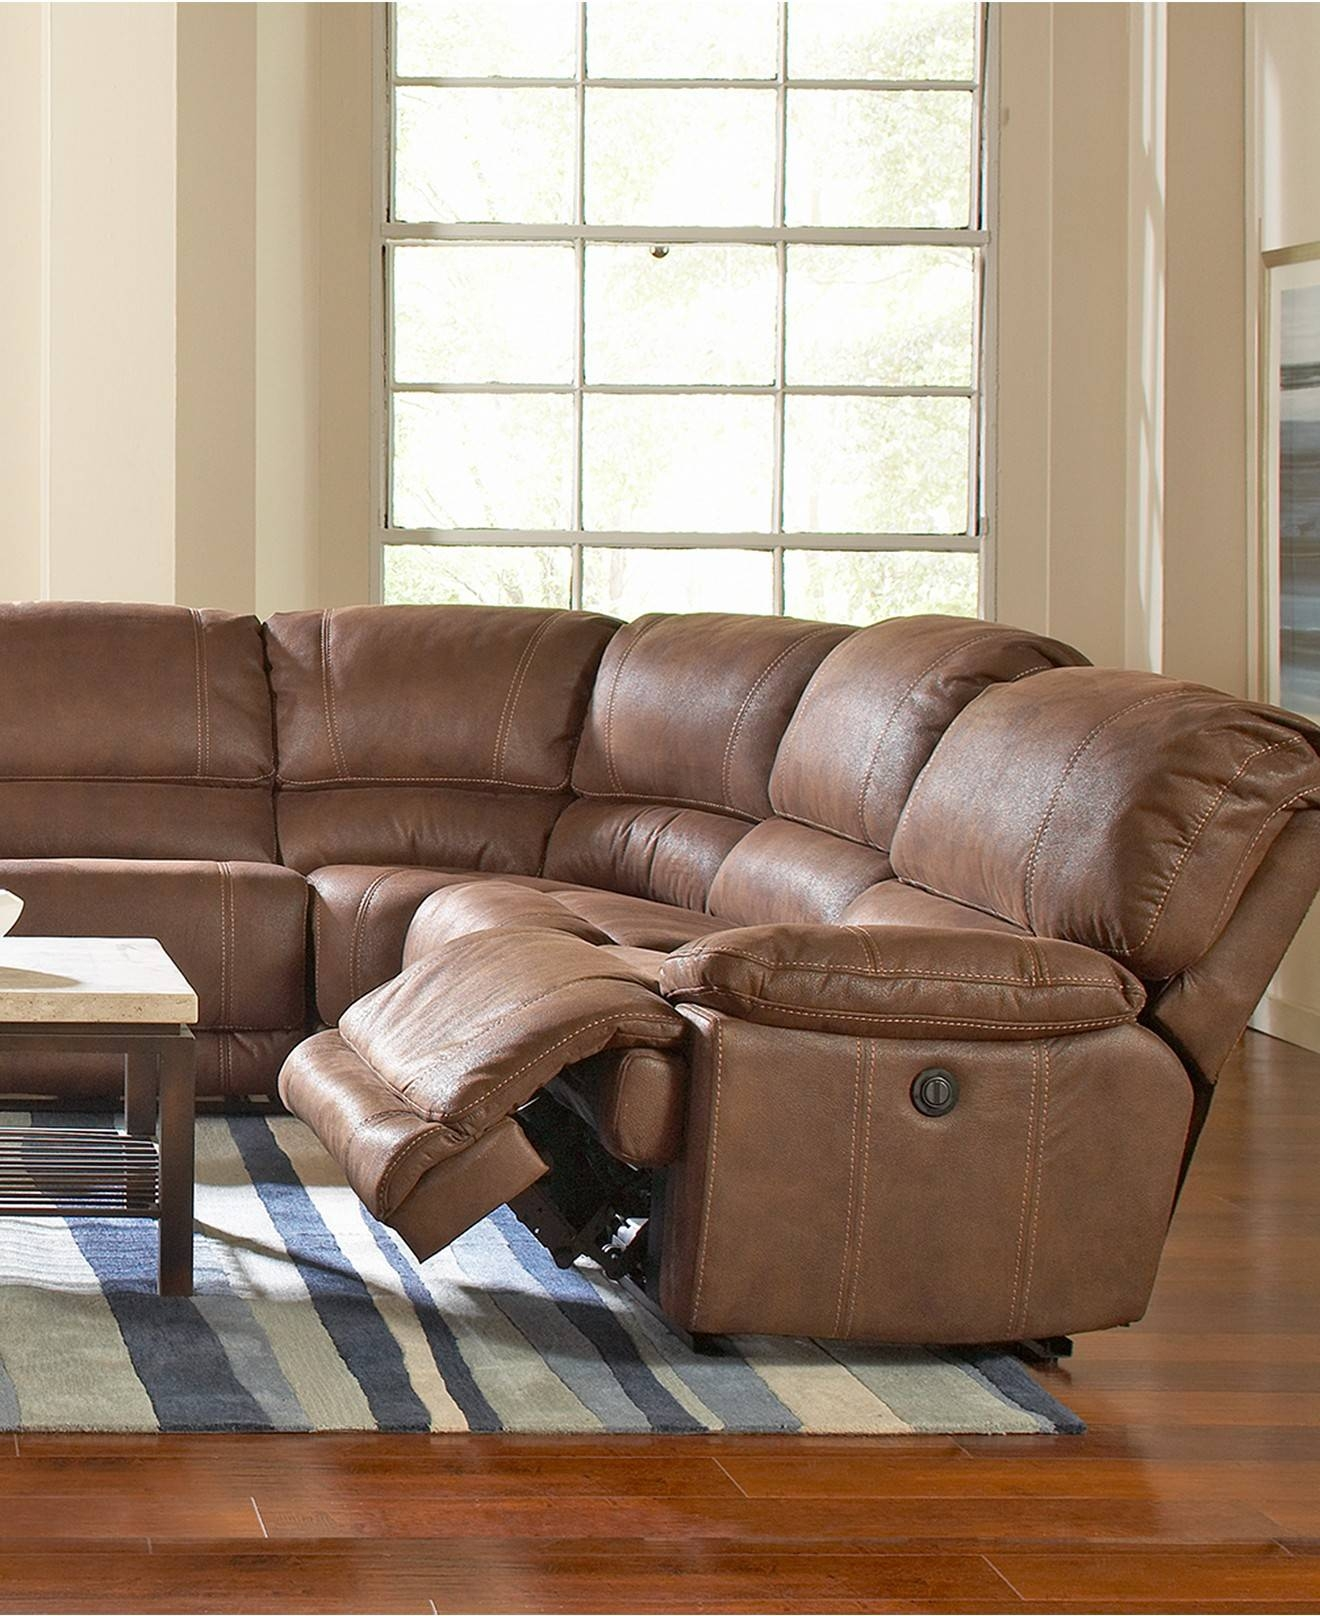 Riveting Macys Small Sectional Sofa Tags : Sectional Sofas Macys within Jedd Fabric Reclining Sectional Sofa (Image 27 of 30)